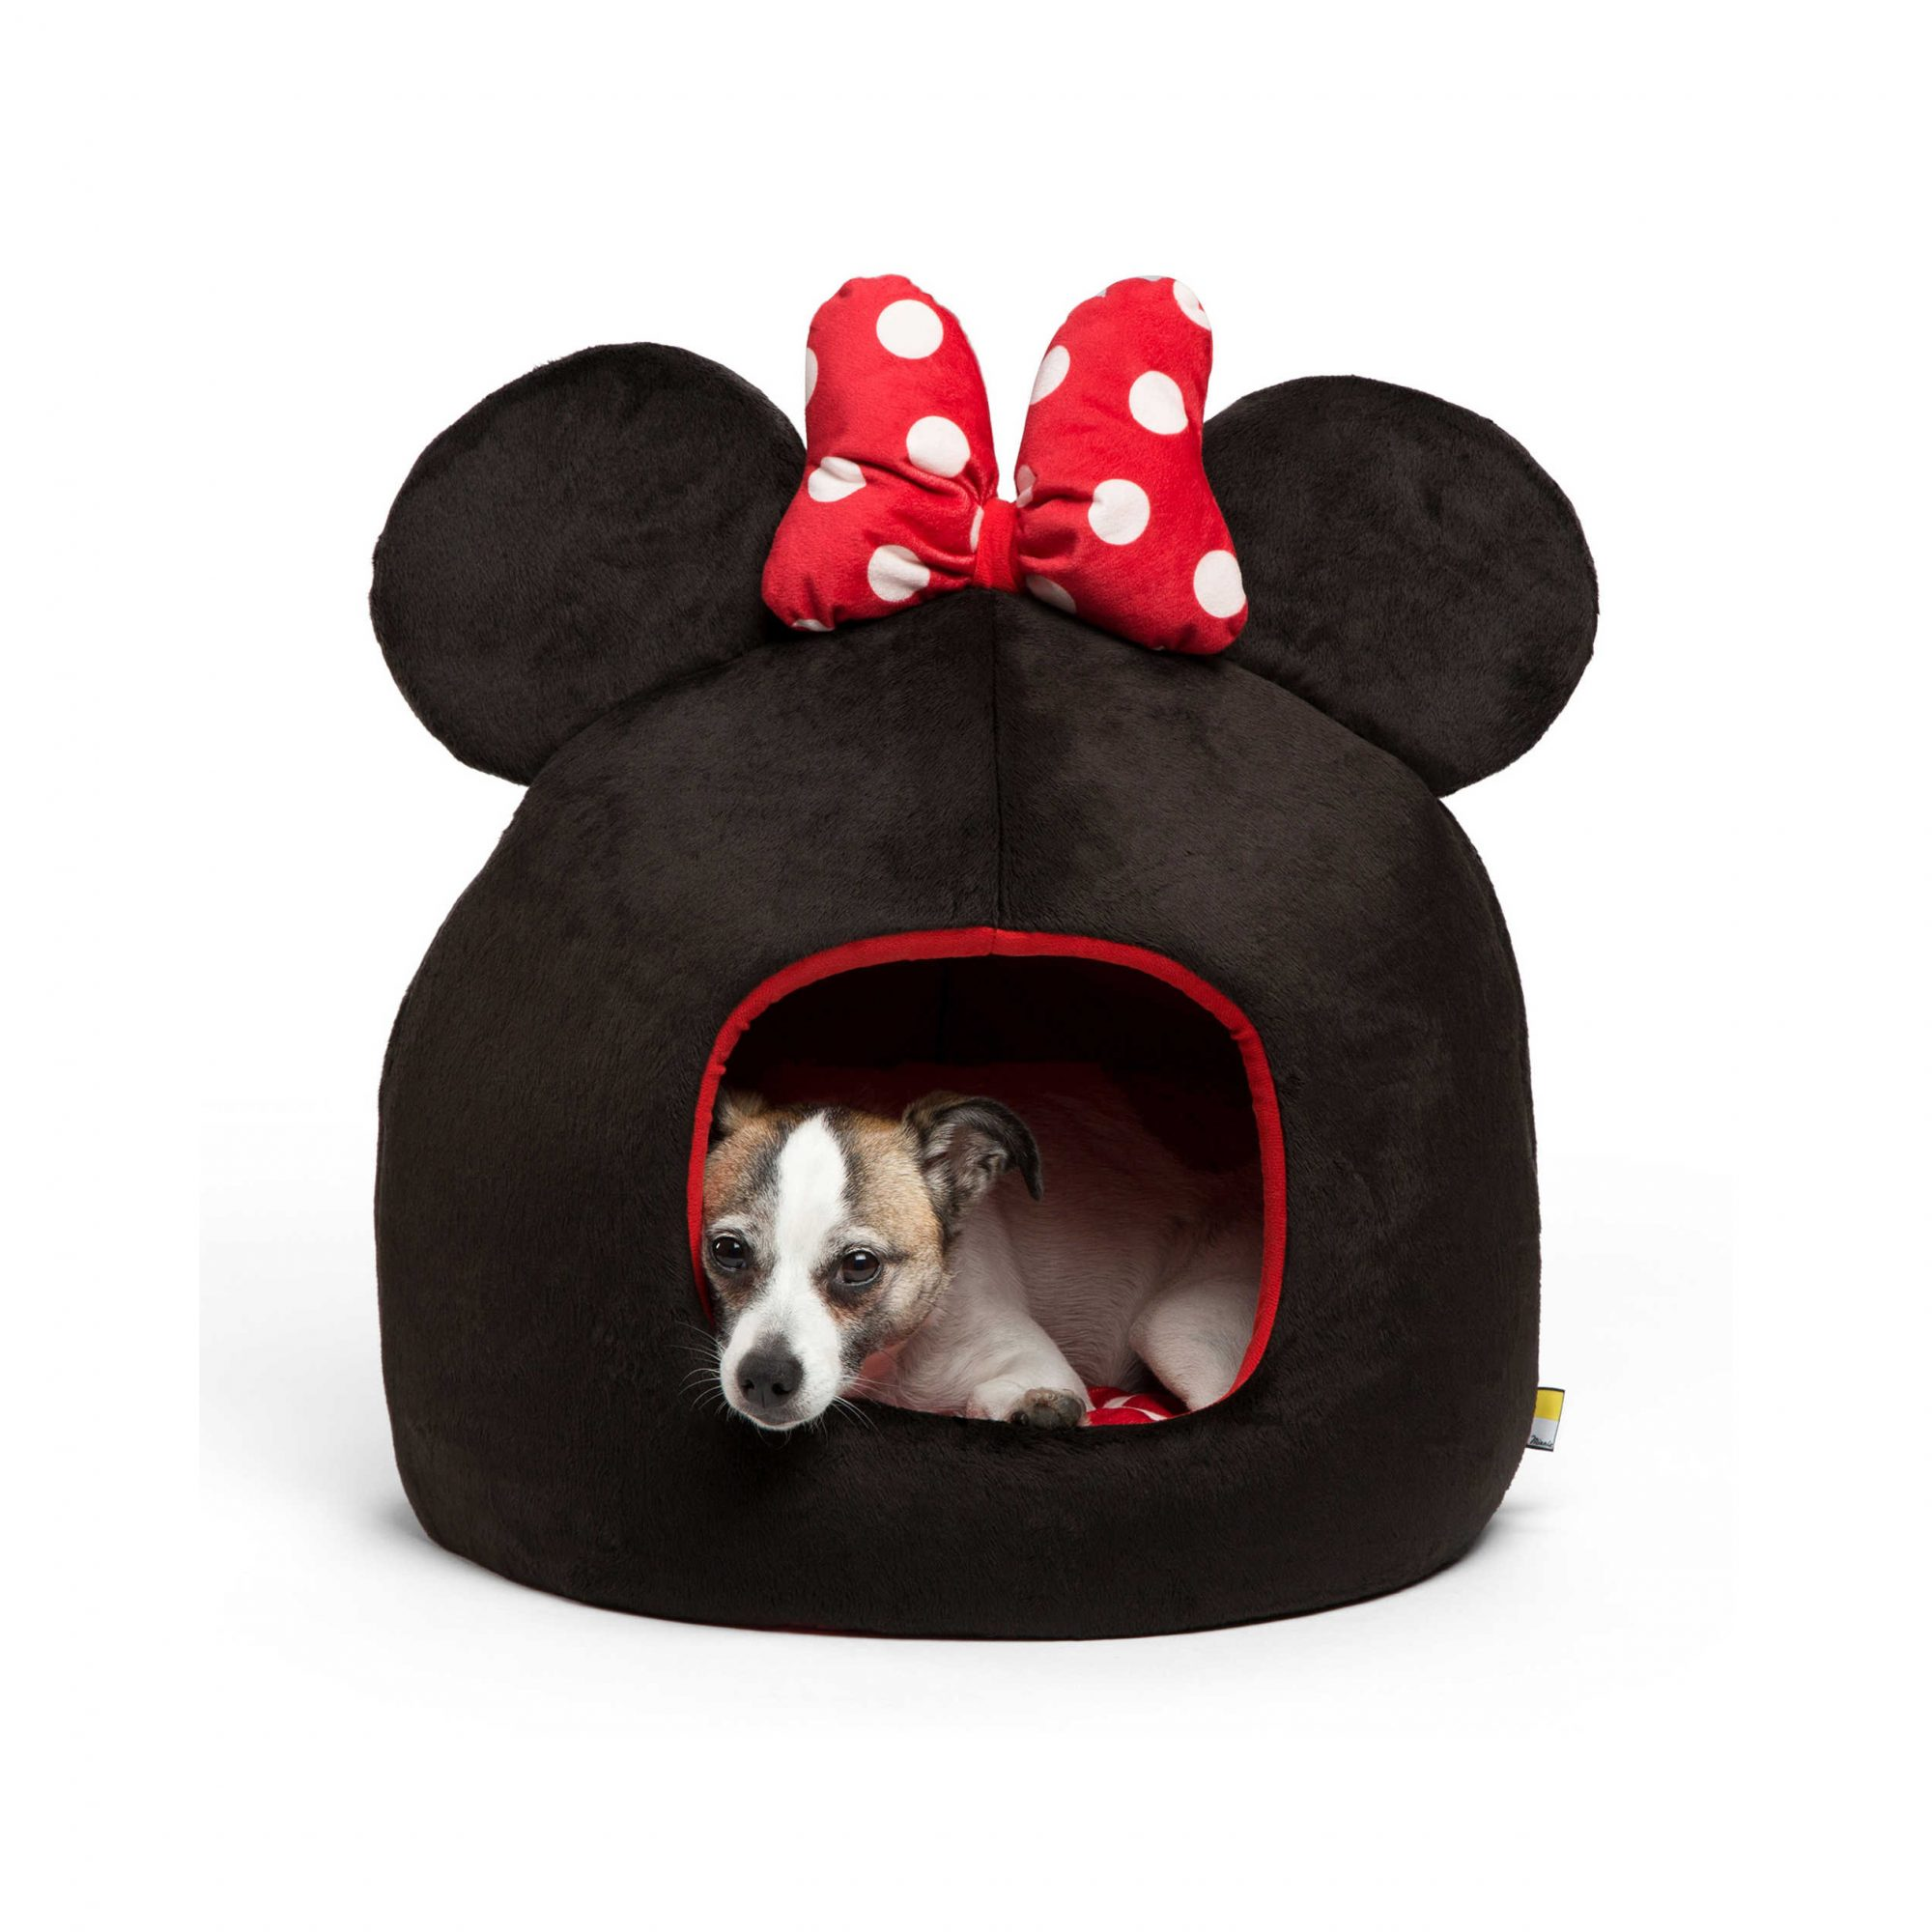 Mickey or Minnie Mouse Pet Dome